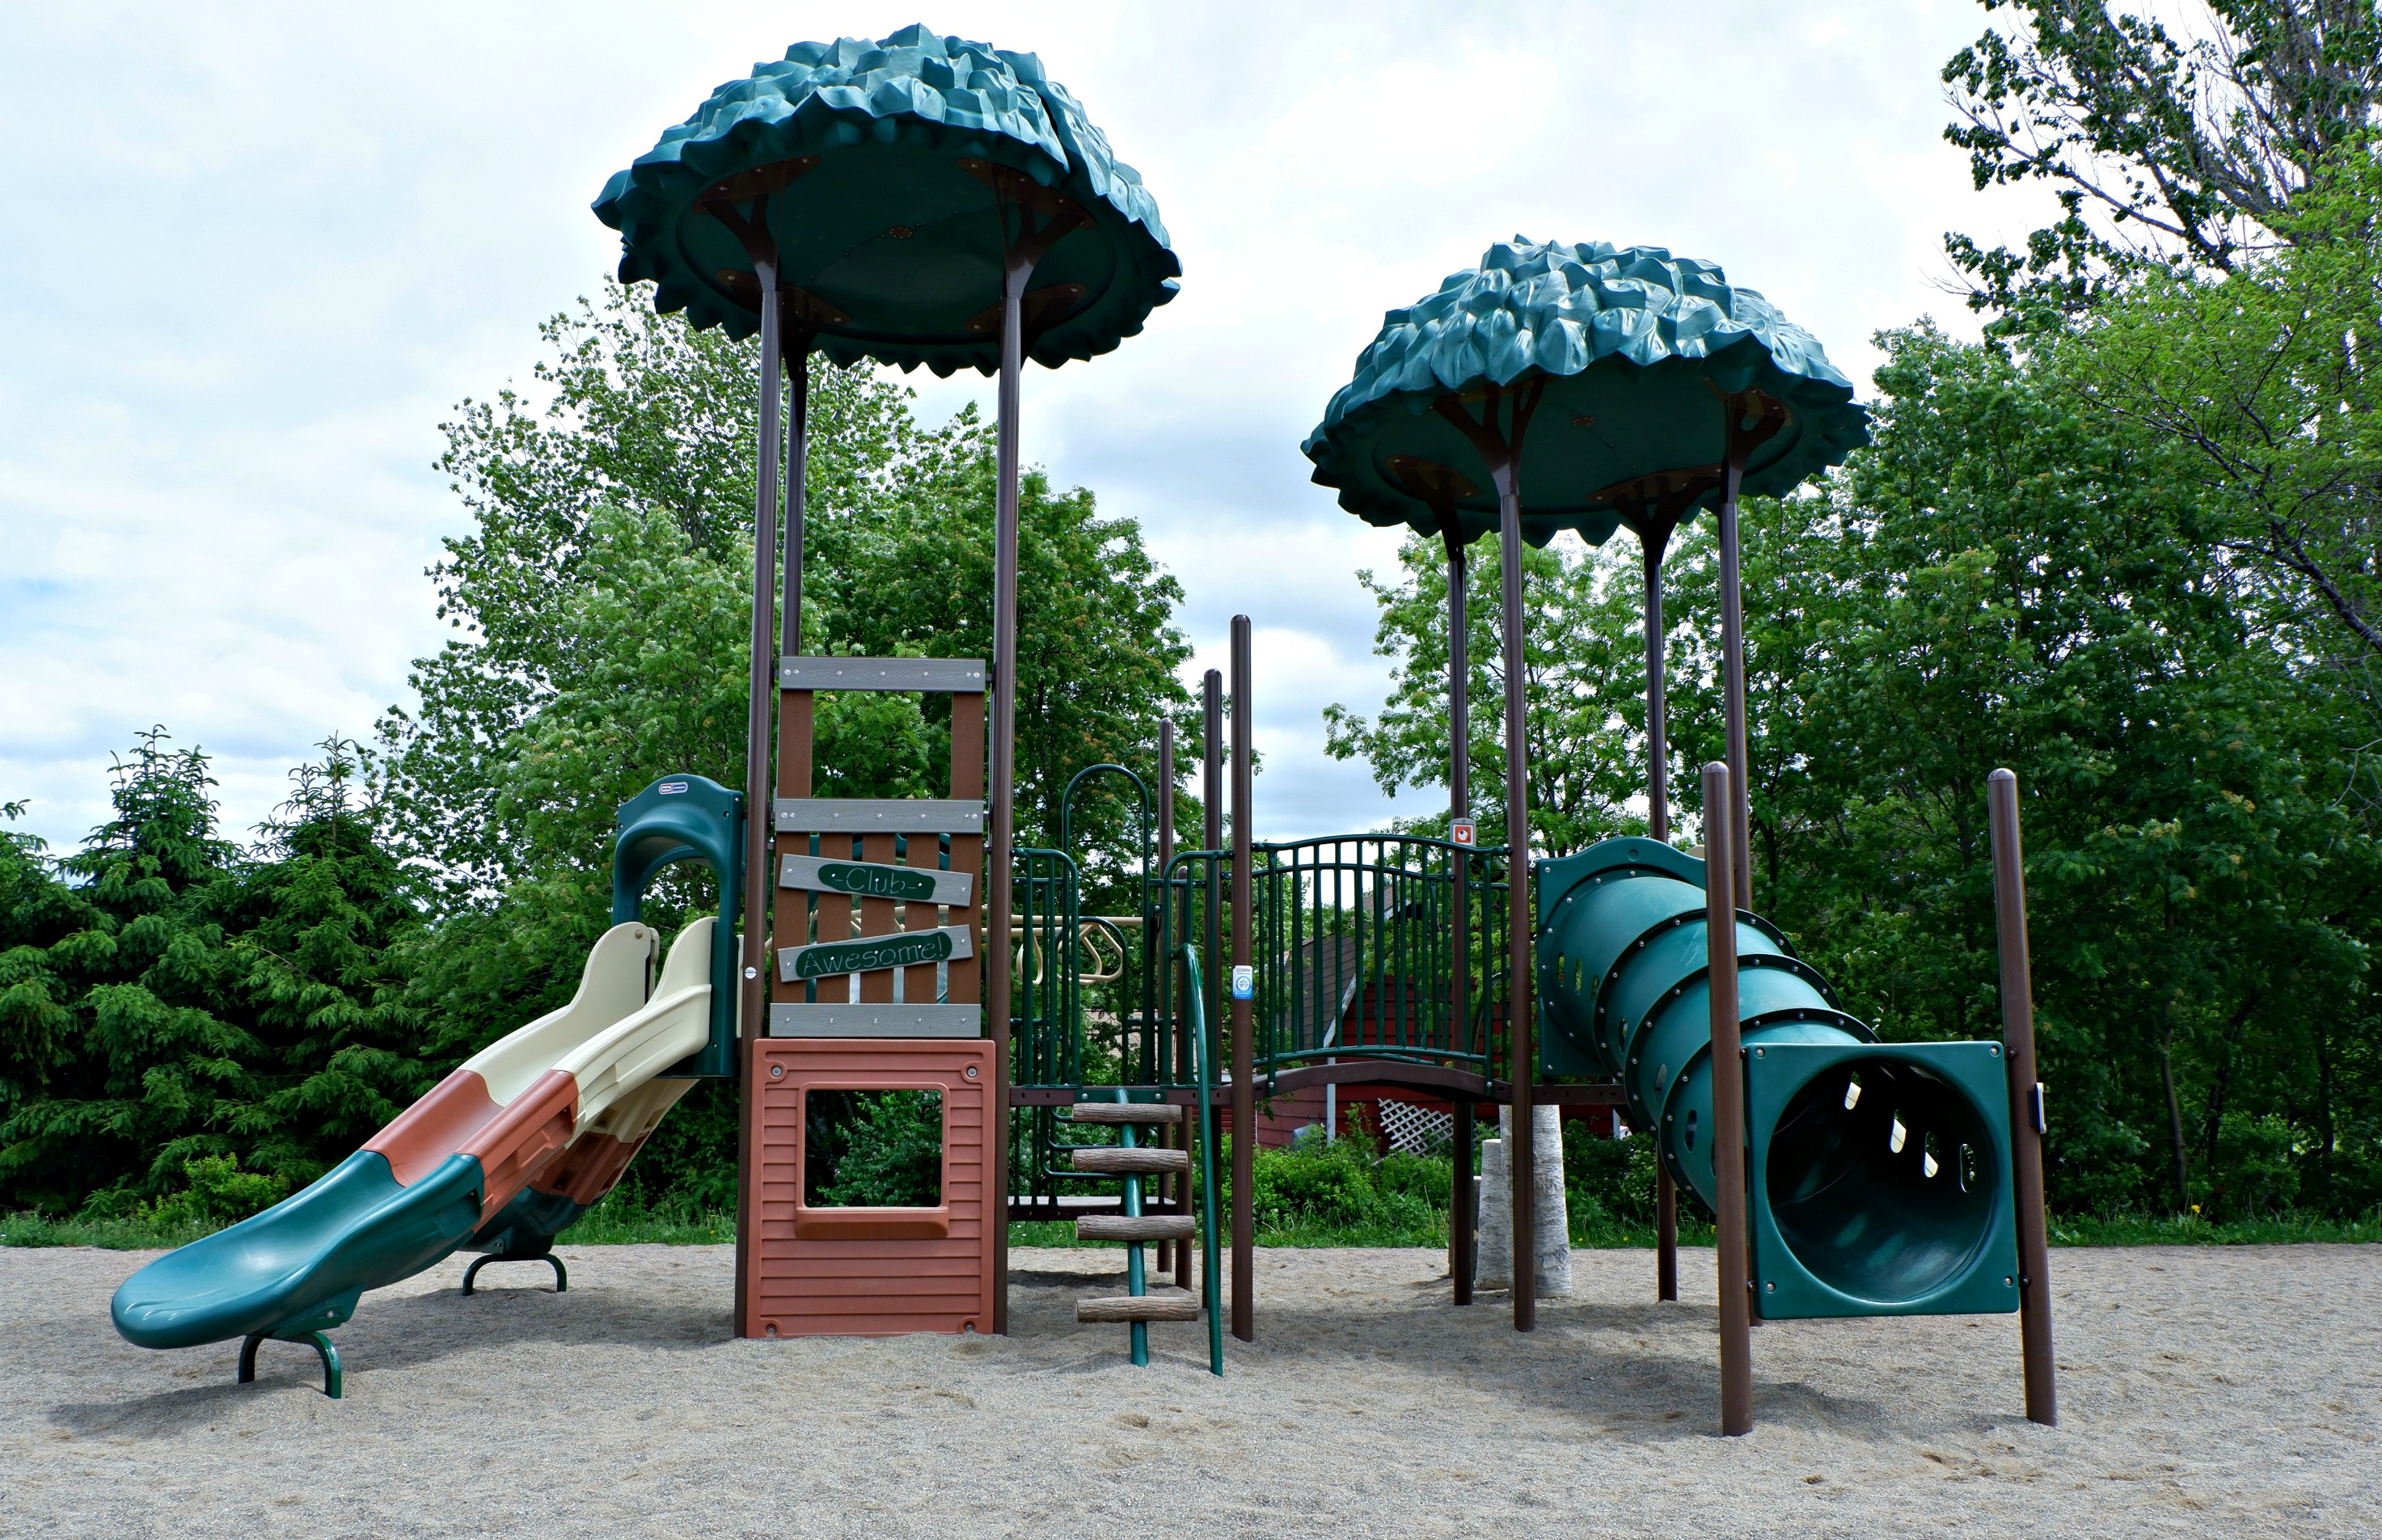 bridgedale playground riverview moncton dieppe best park play space pickle planet structure